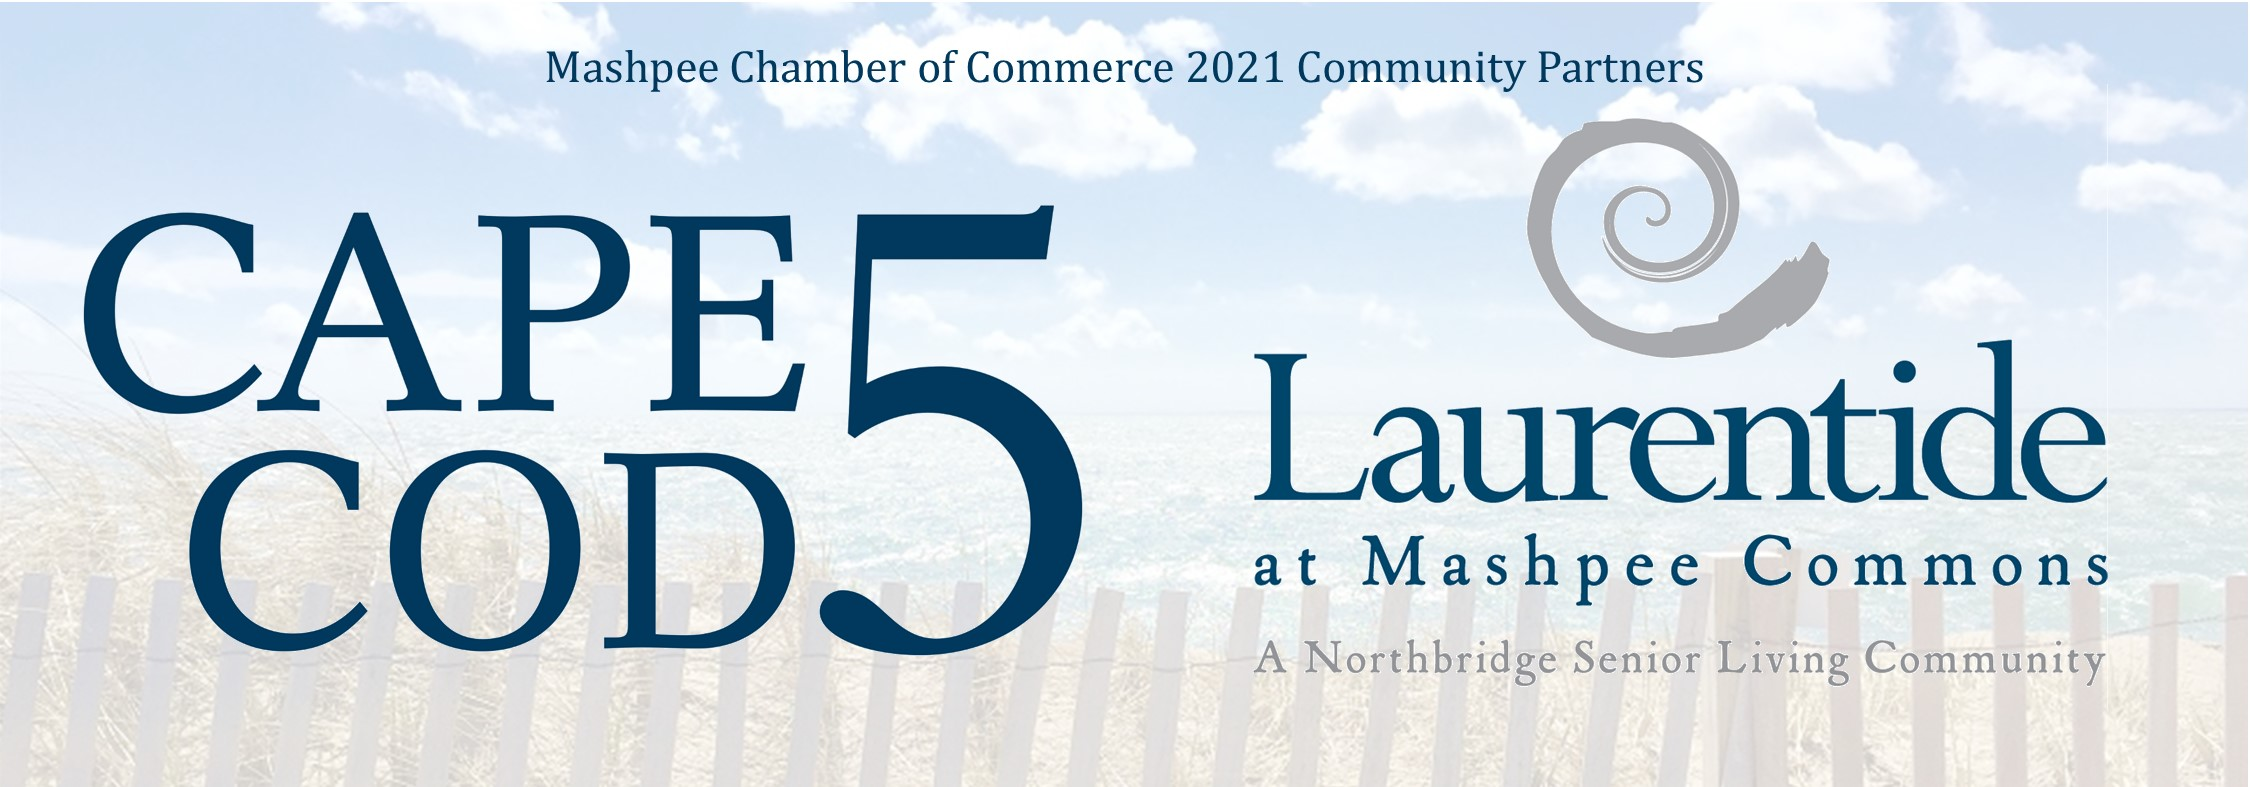 2021 Mashpee Chamber Community Partners Cape Cod 5 and Laurentide at Mashpee Commons